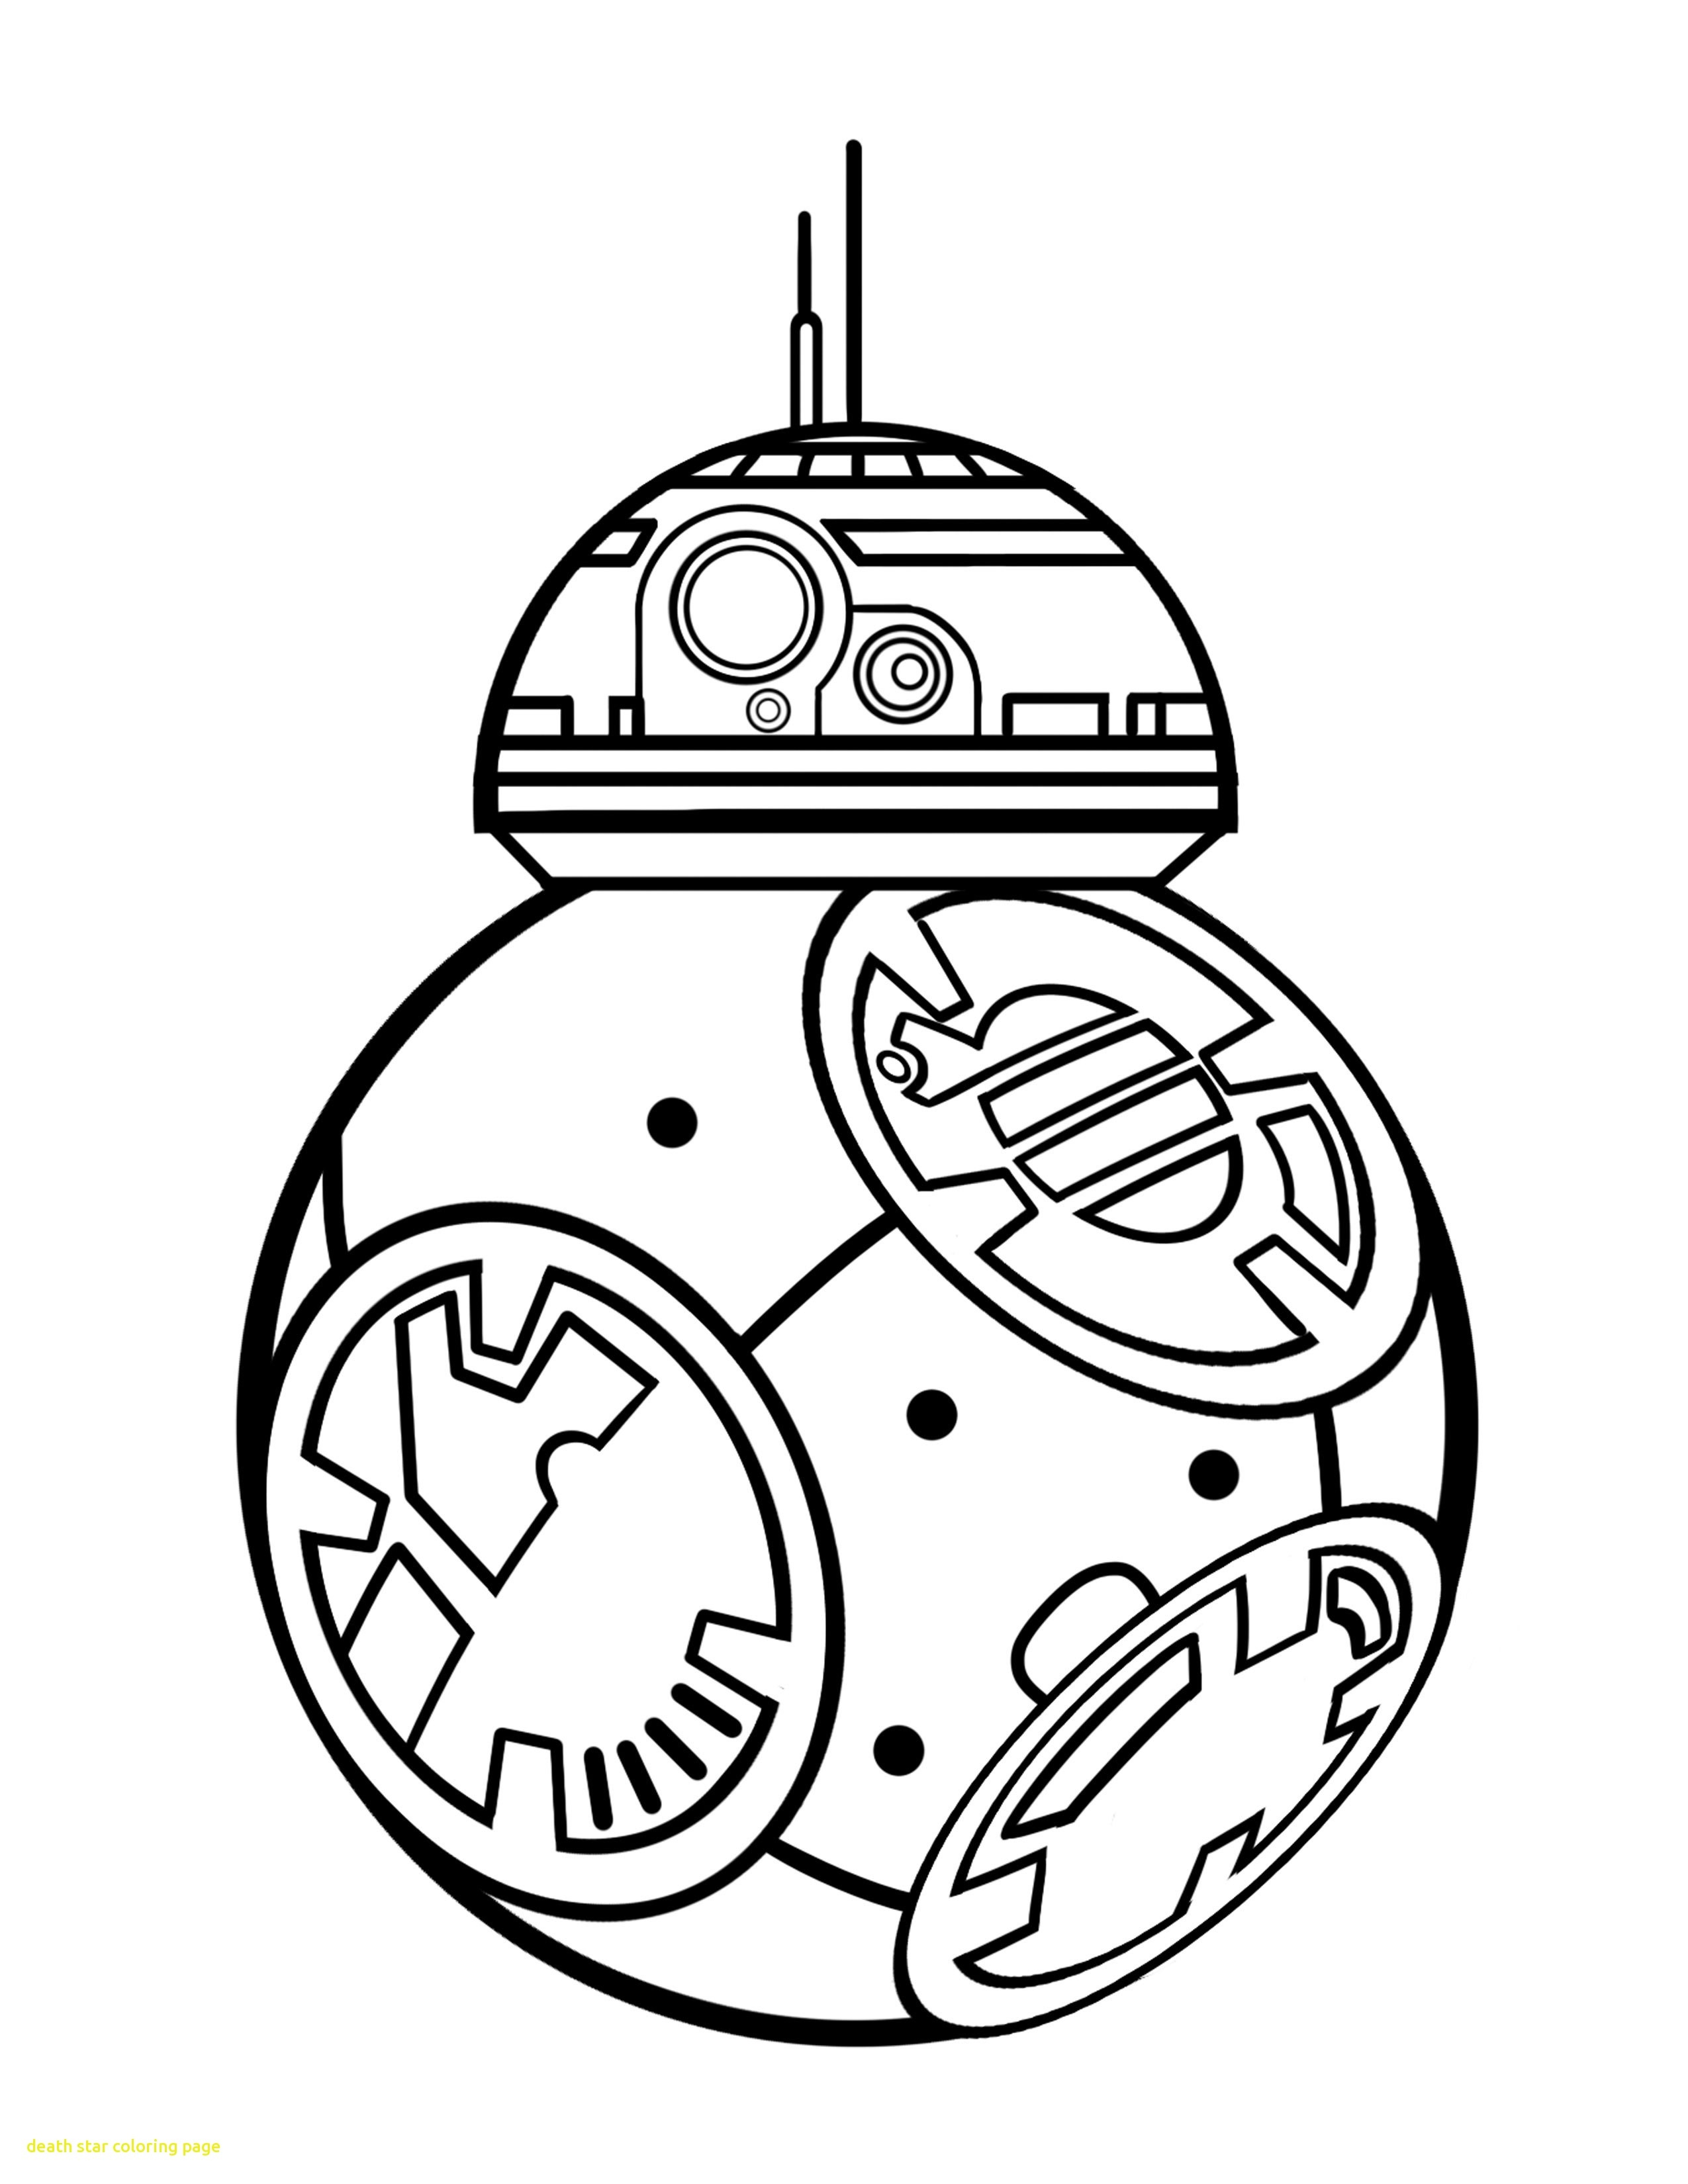 death star coloring sheet tie fighter coloring page at getcoloringscom free star coloring death sheet